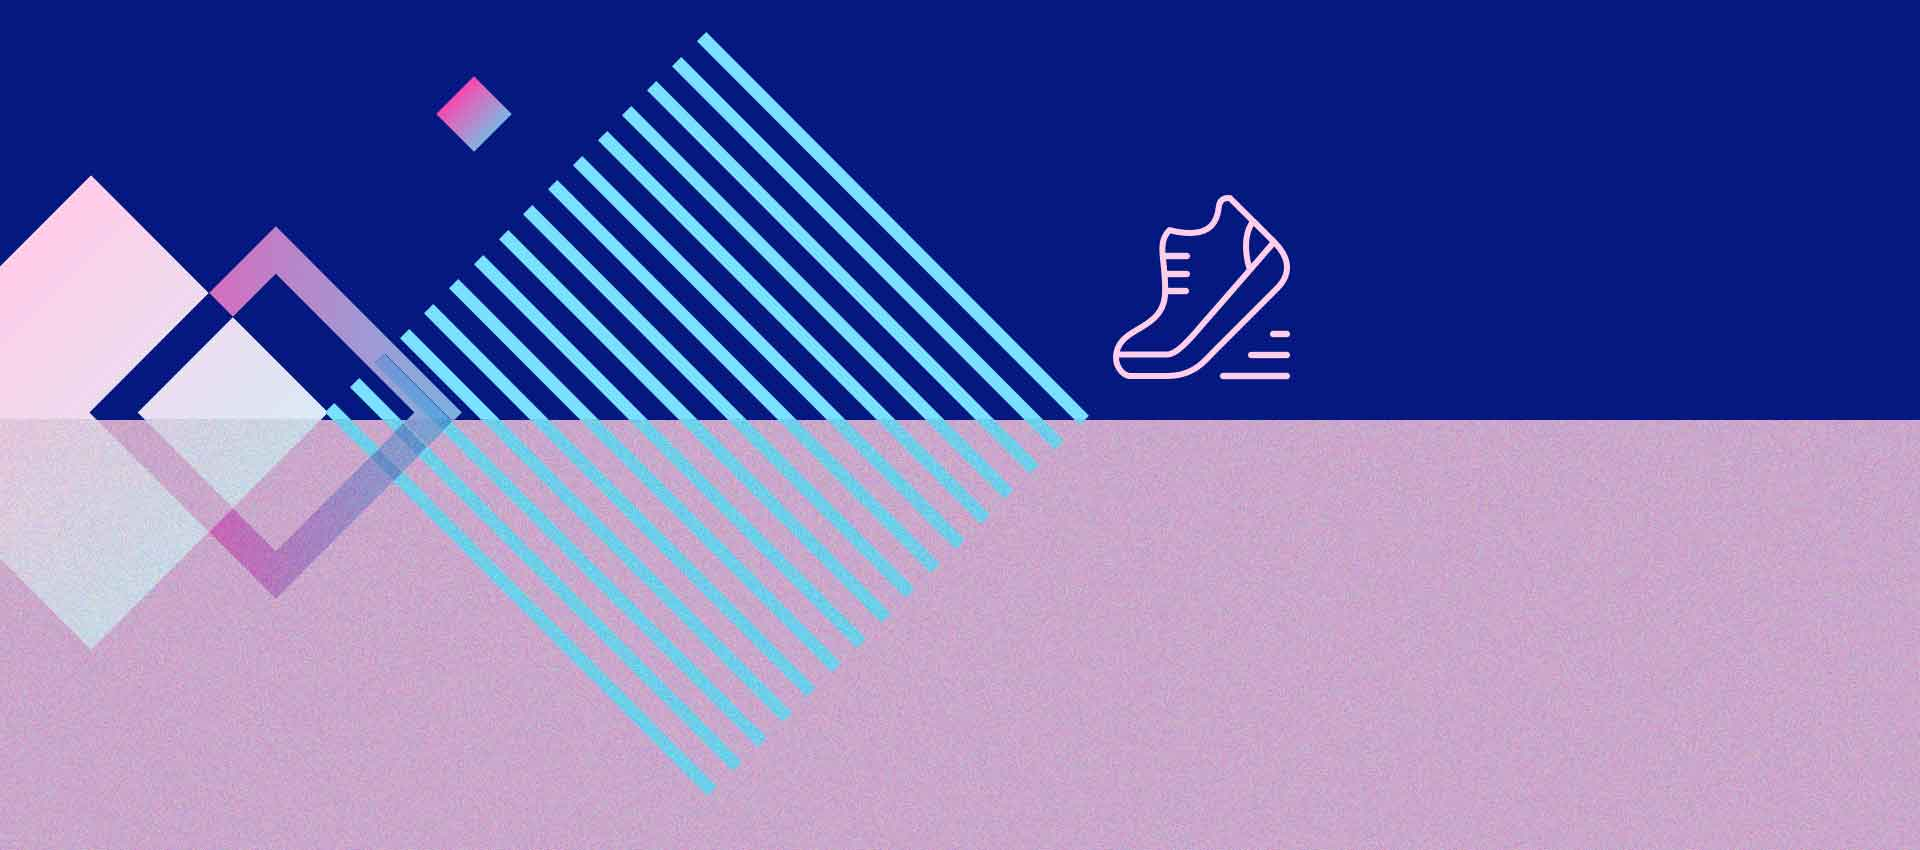 abstract background image with running shoe